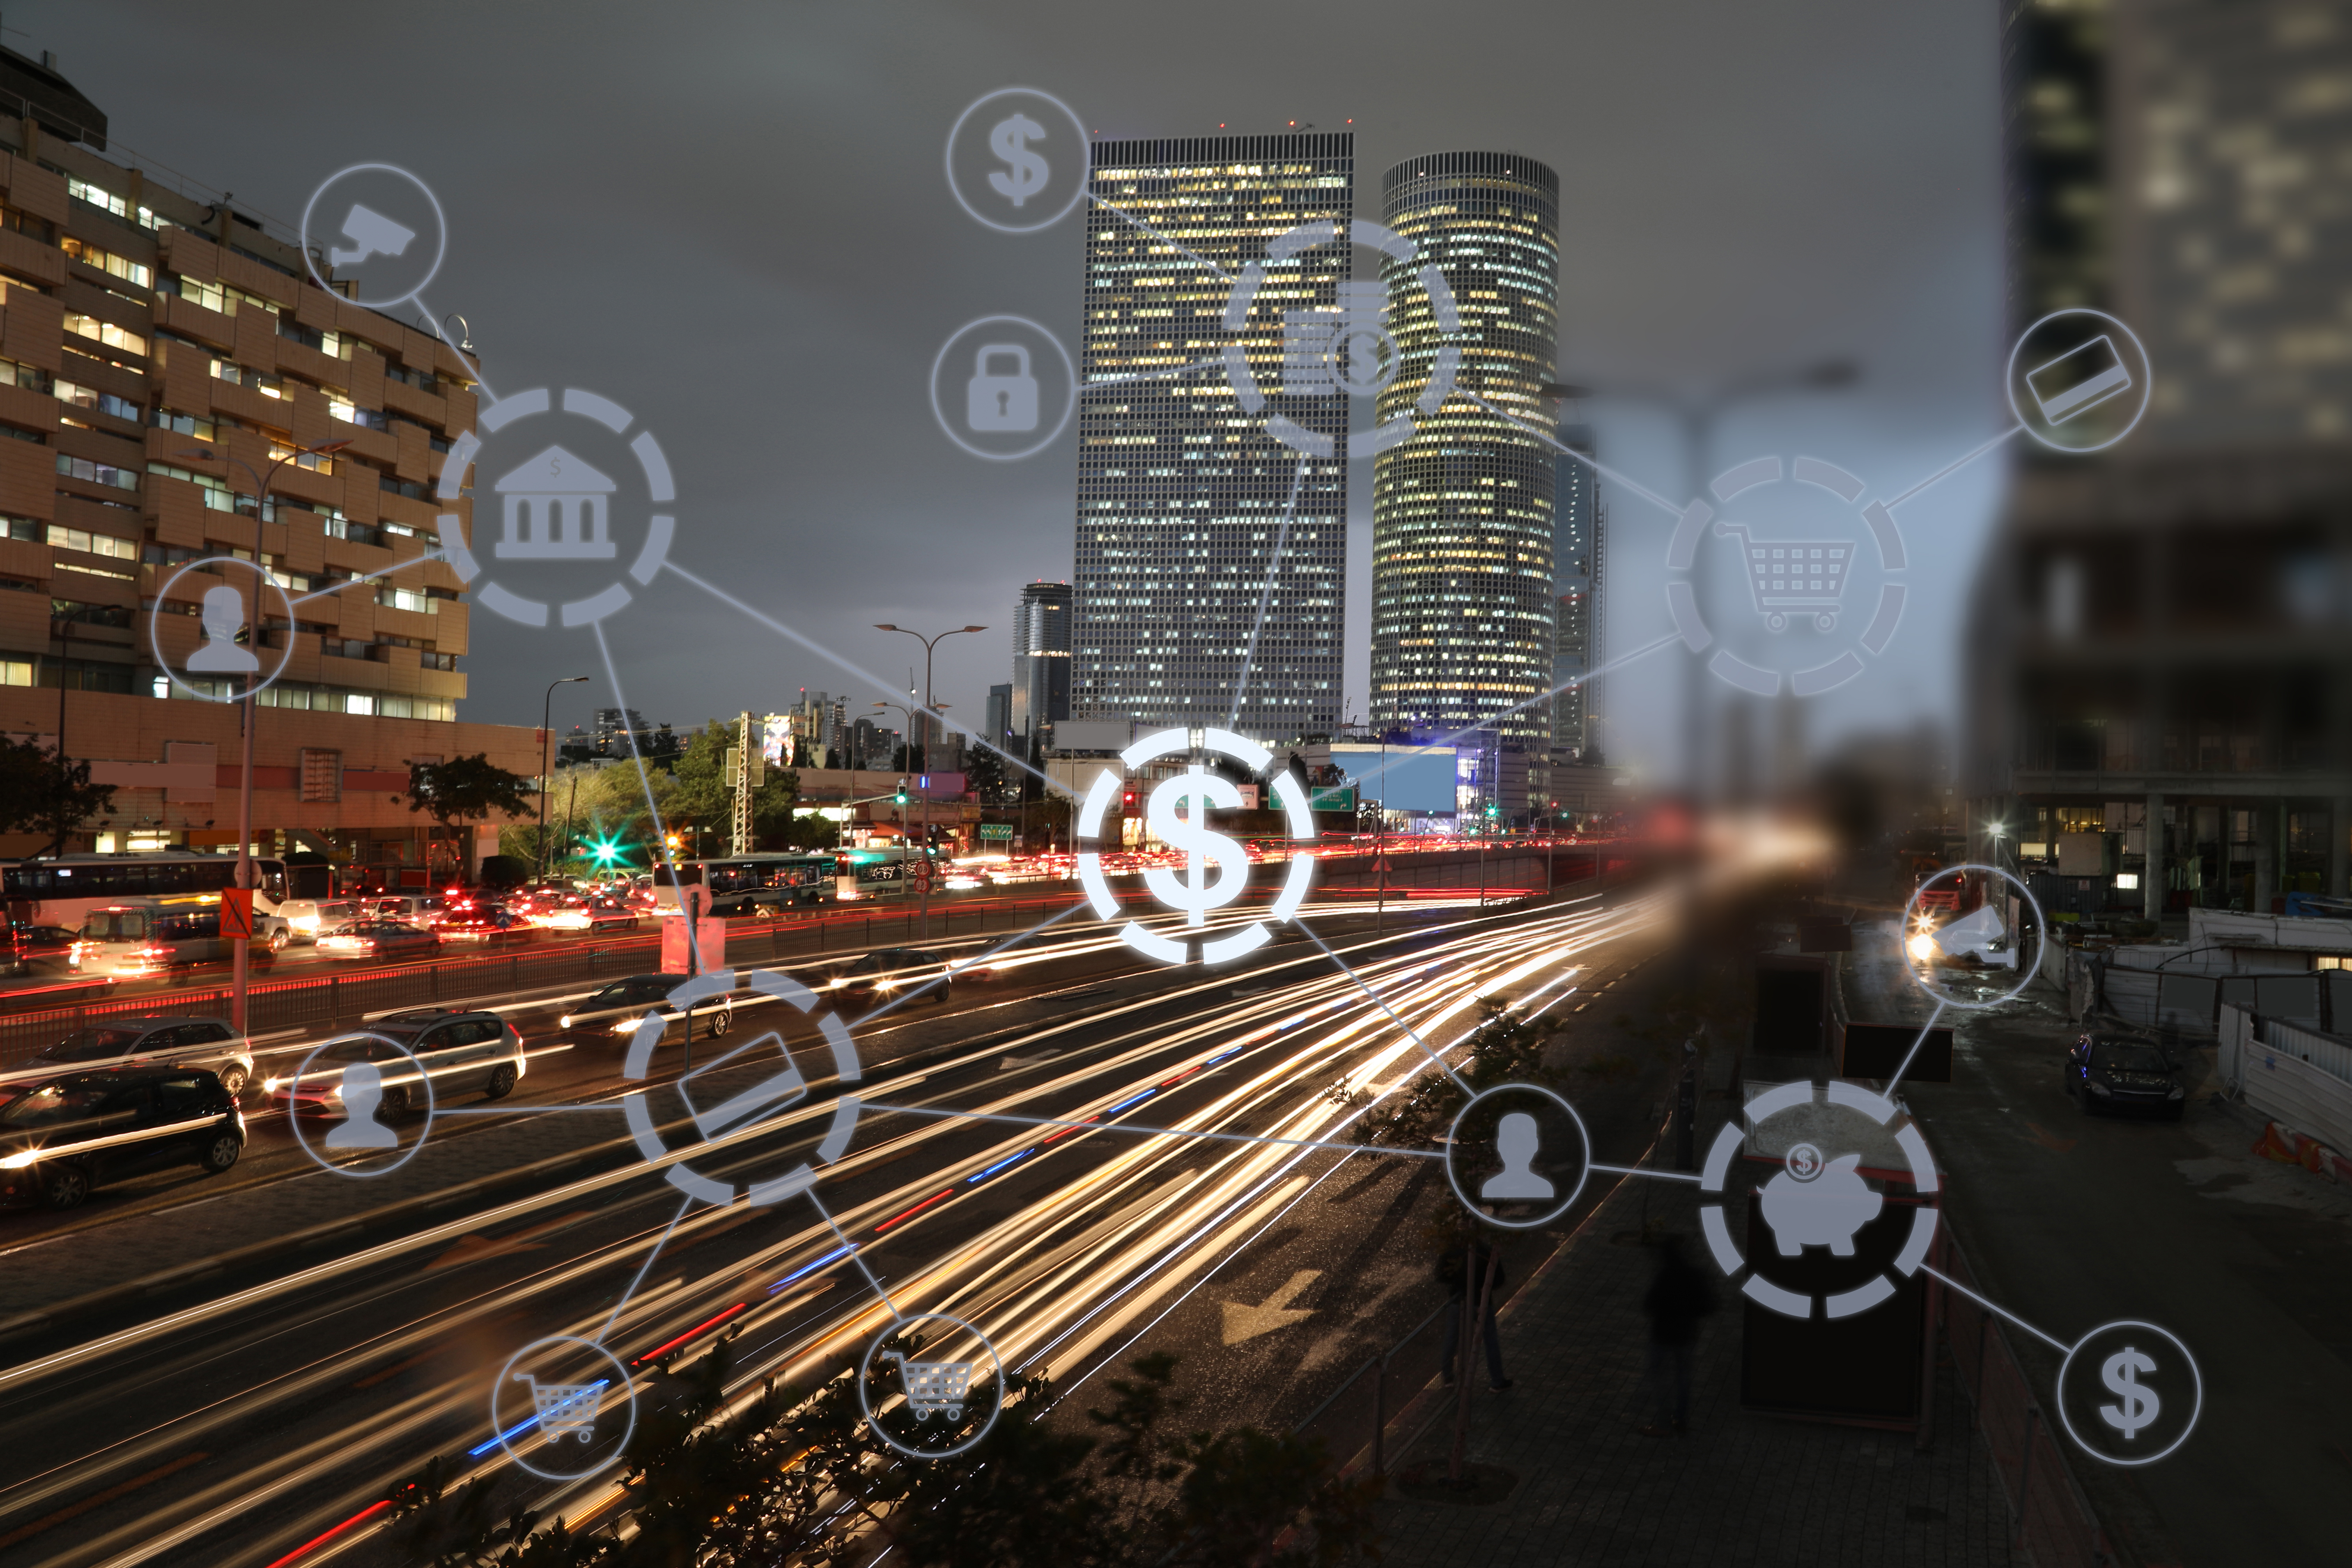 City skyscrapers and freeway at night, lit up with overlay of payment automation application icons